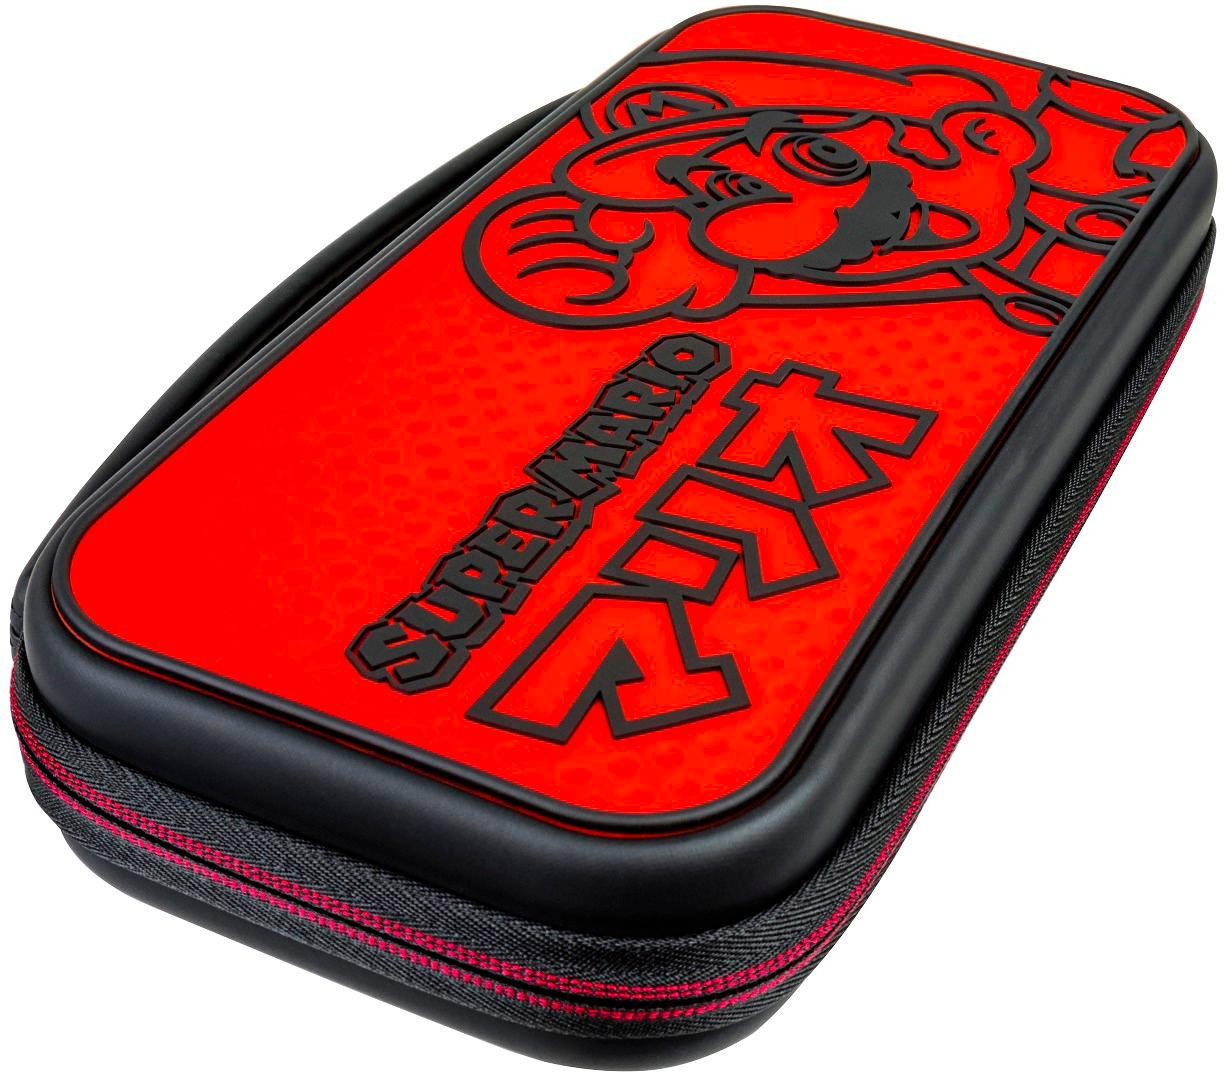 CASE DELUXE MARIO KANA EDITION PDP SWITCH